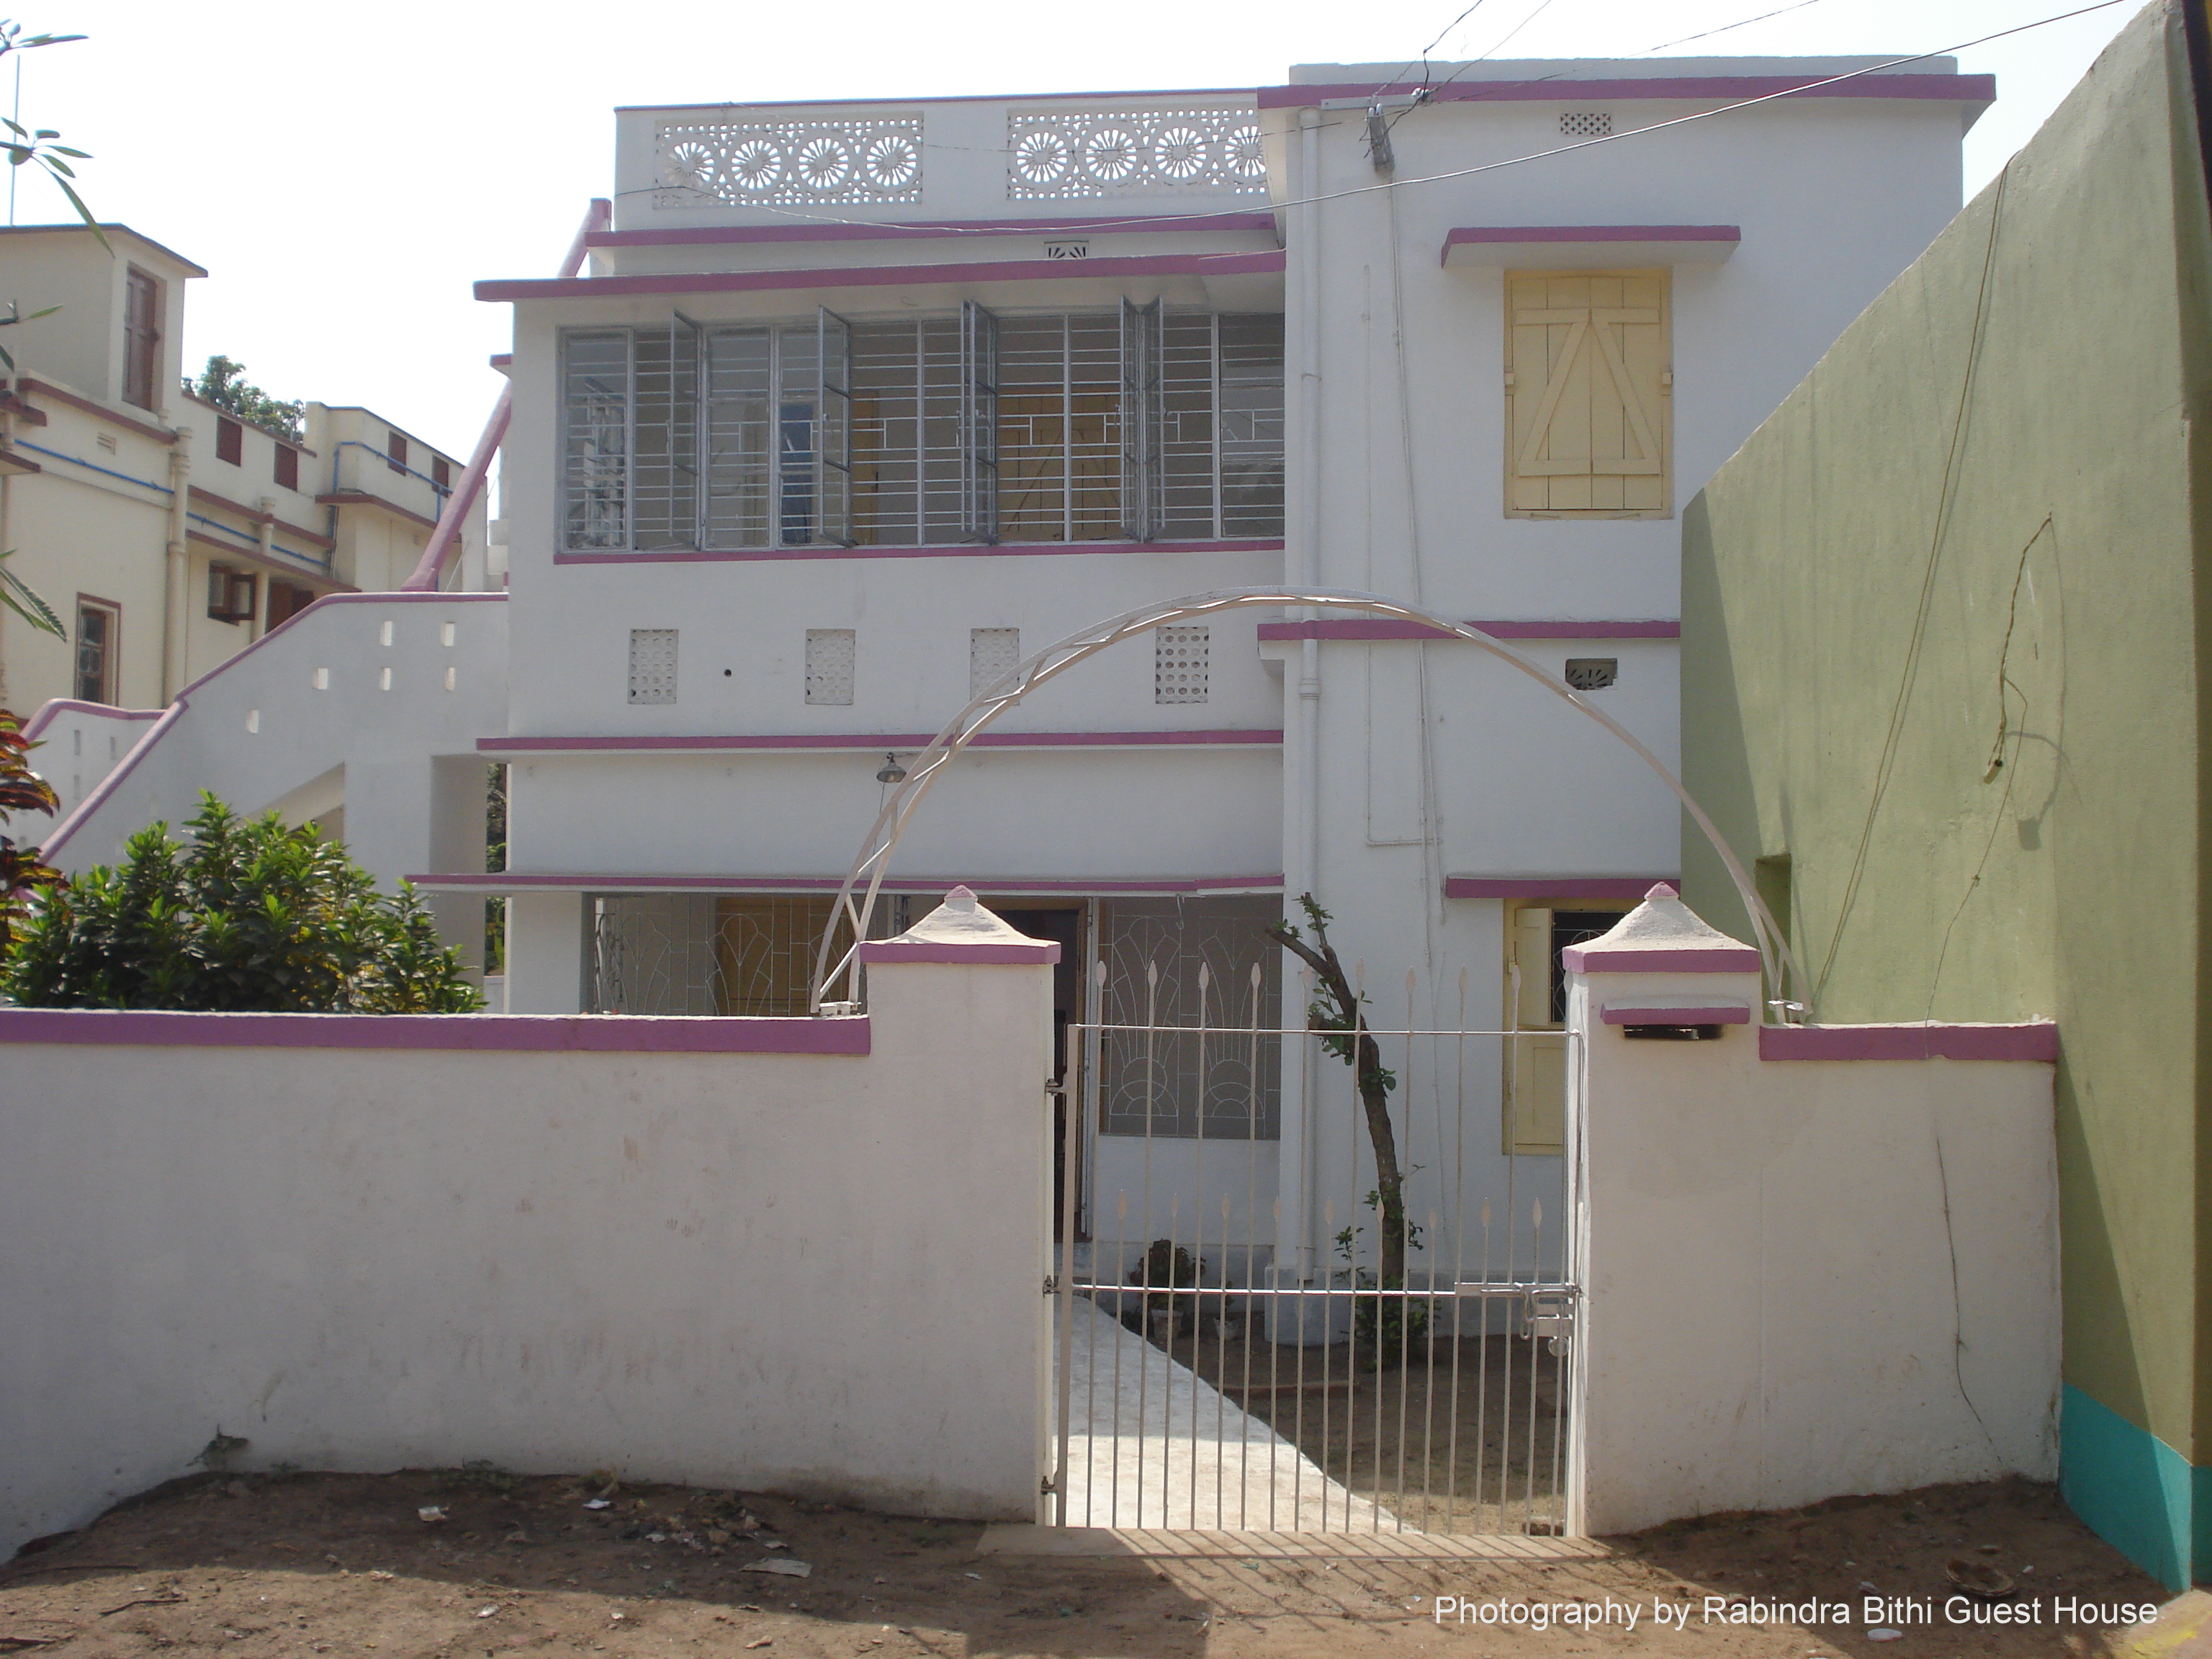 Rabindra Bithi Guest House